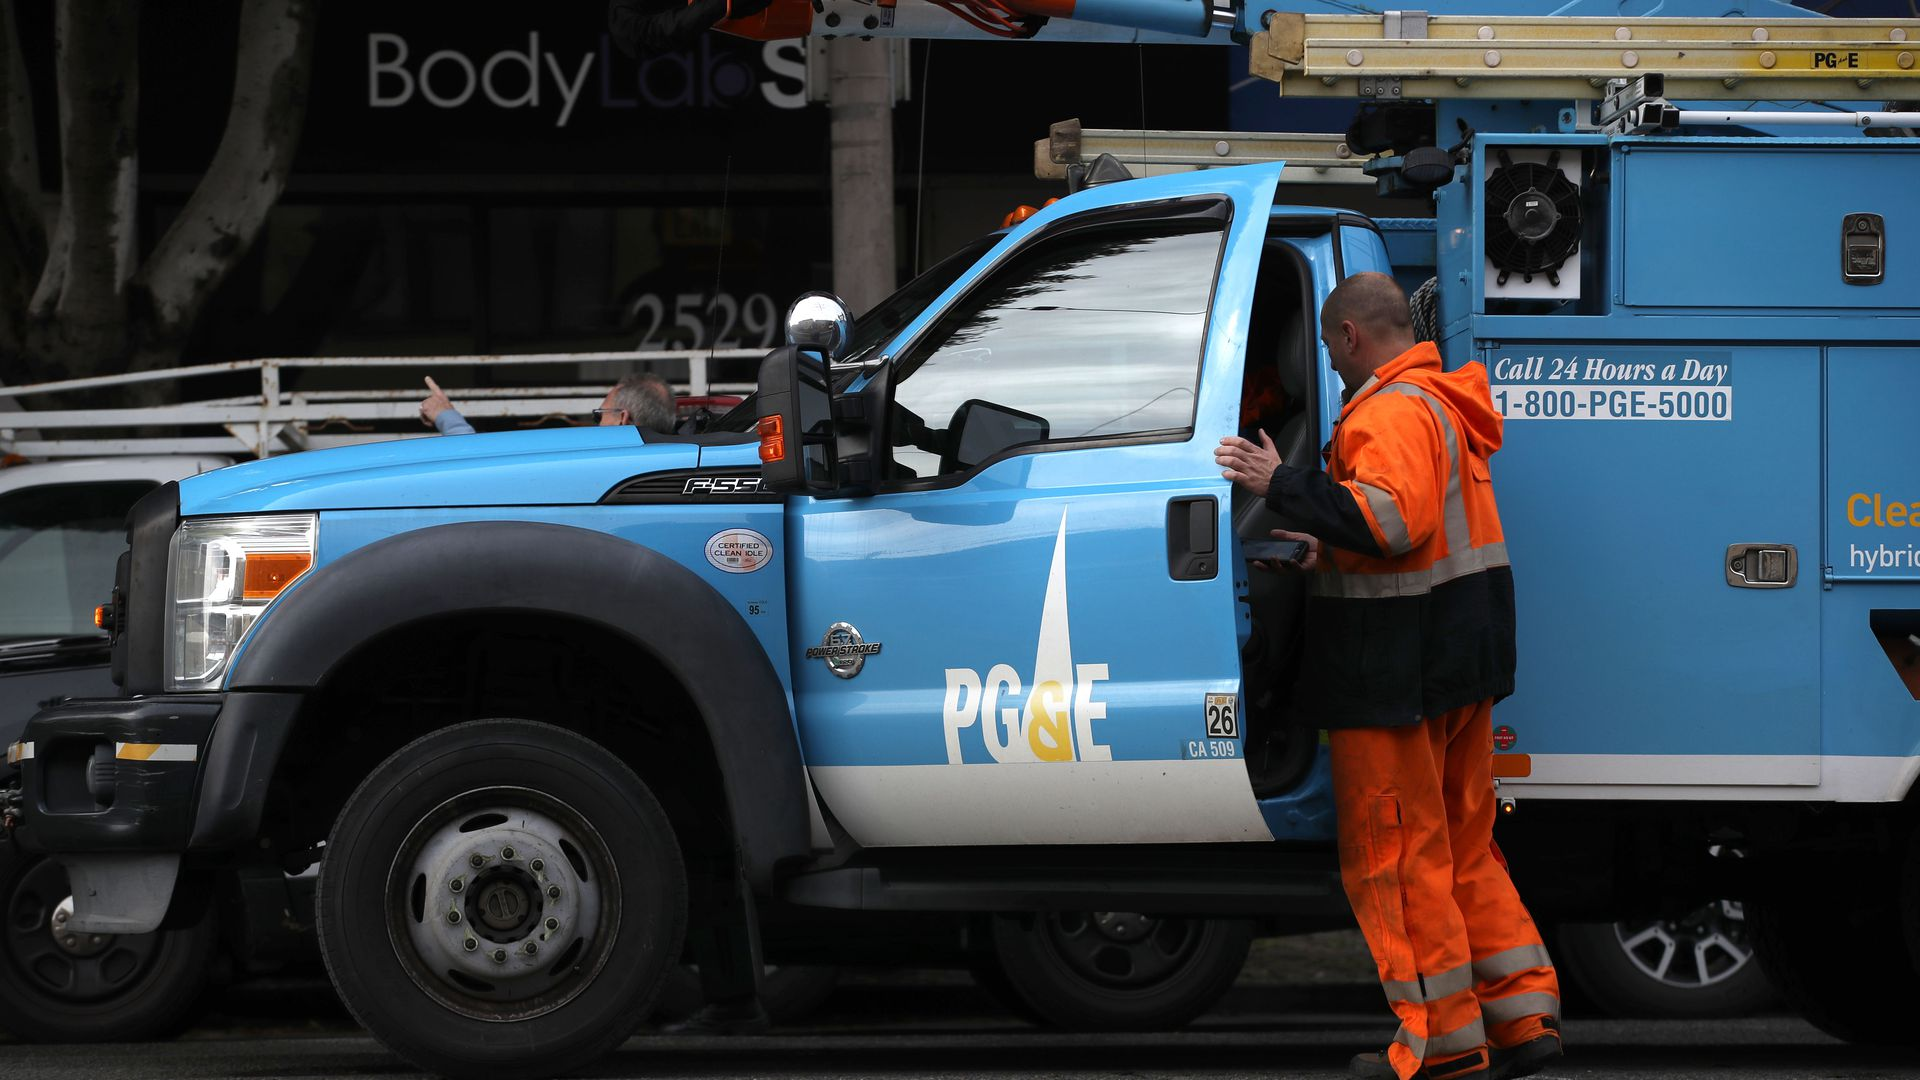 SAN FRANCISCO, CALIFORNIA - JANUARY 17: The Pacific Gas & Electric (PG&E) logo is displayed on a PG&E truck on January 17, 2019 in San Francisco, California.